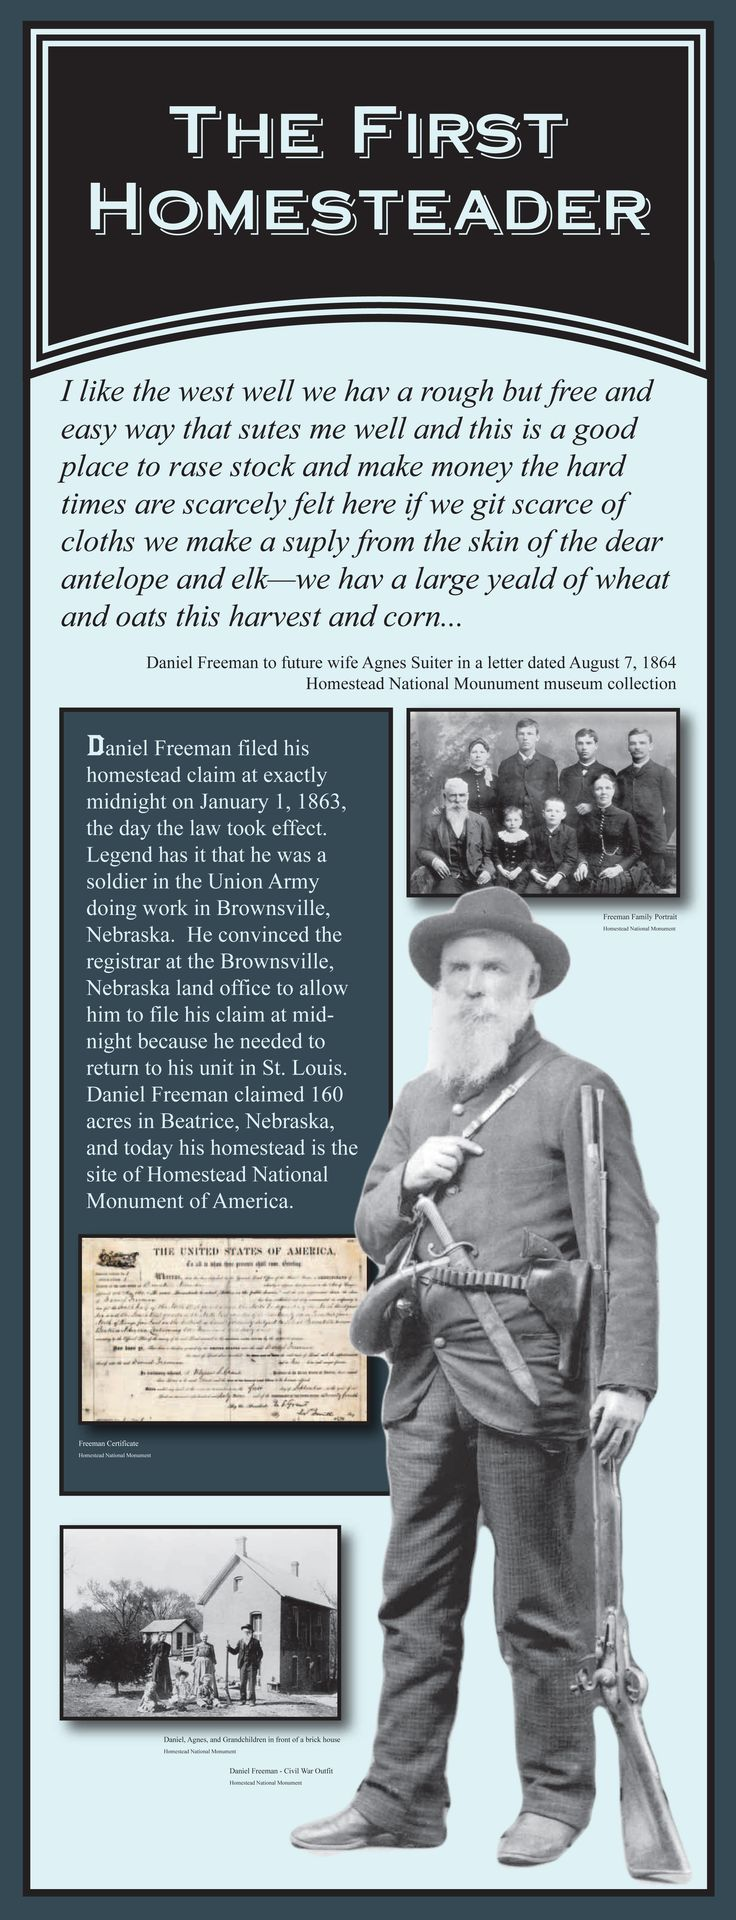 Homestead Act | Homestead Act 150th Traveling Exhibit - Homestead National Monument of ...